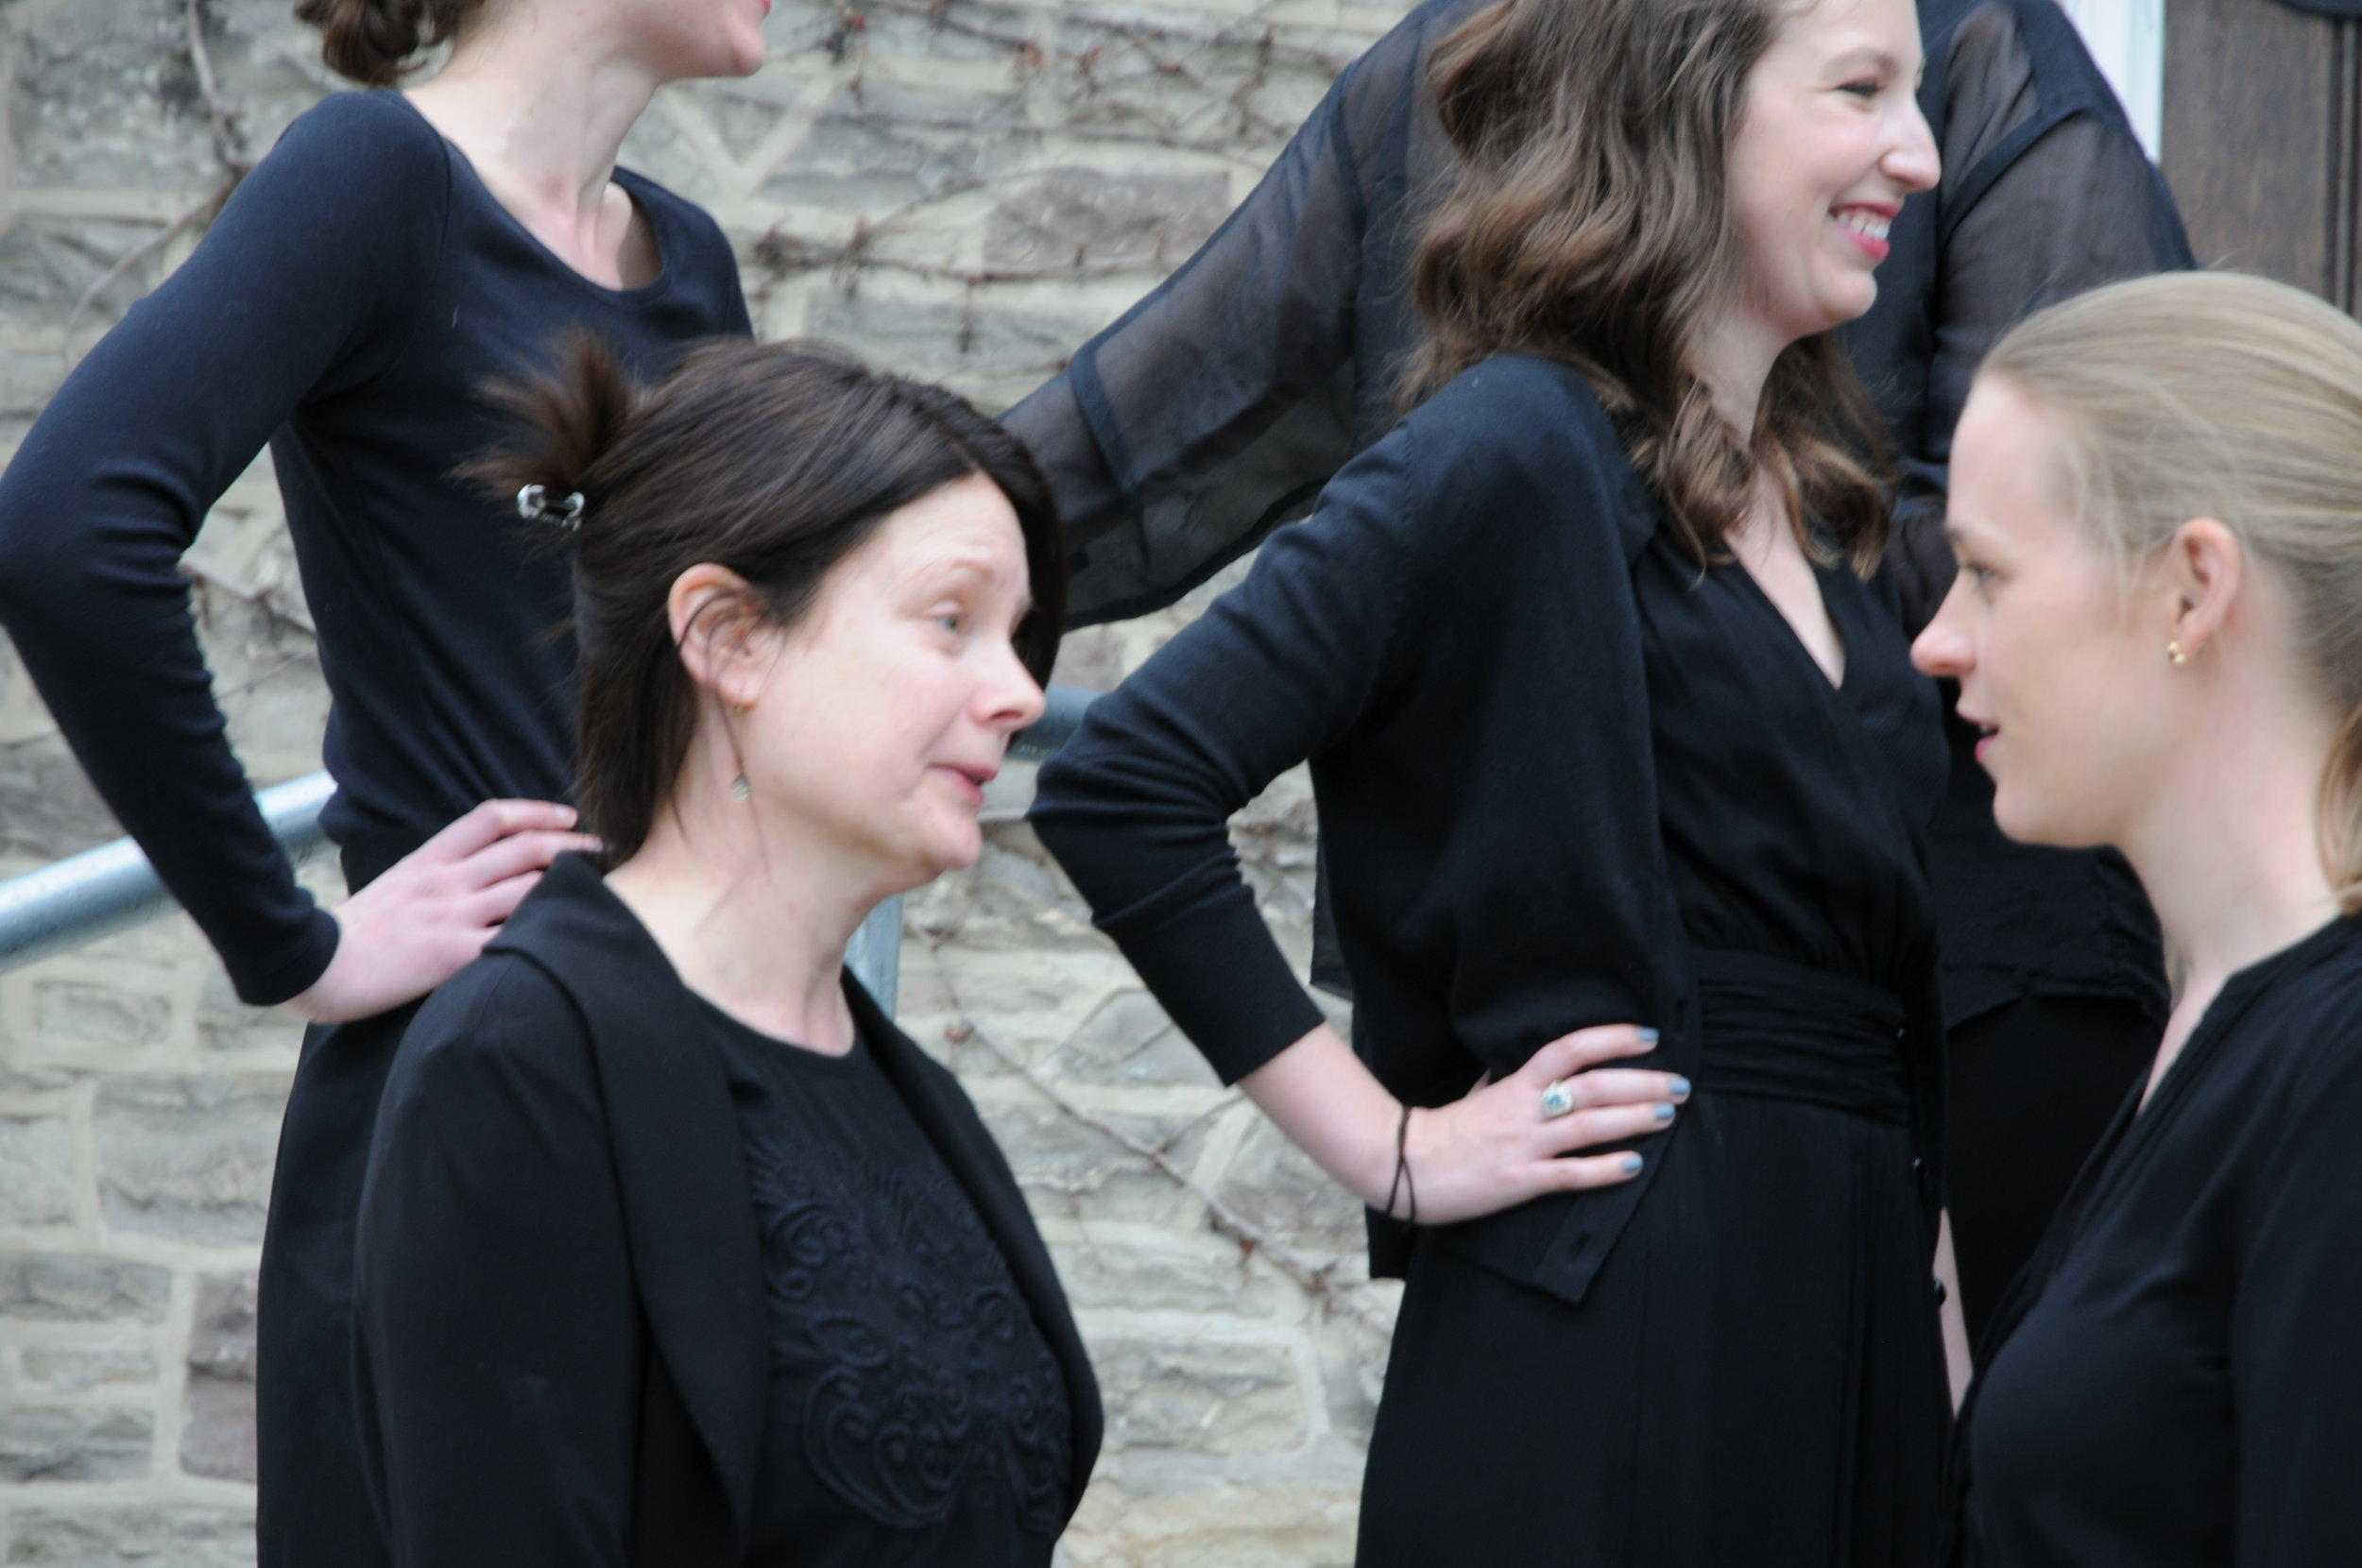 Discussing the challenges of vibrato and achieving unity in a choral sound